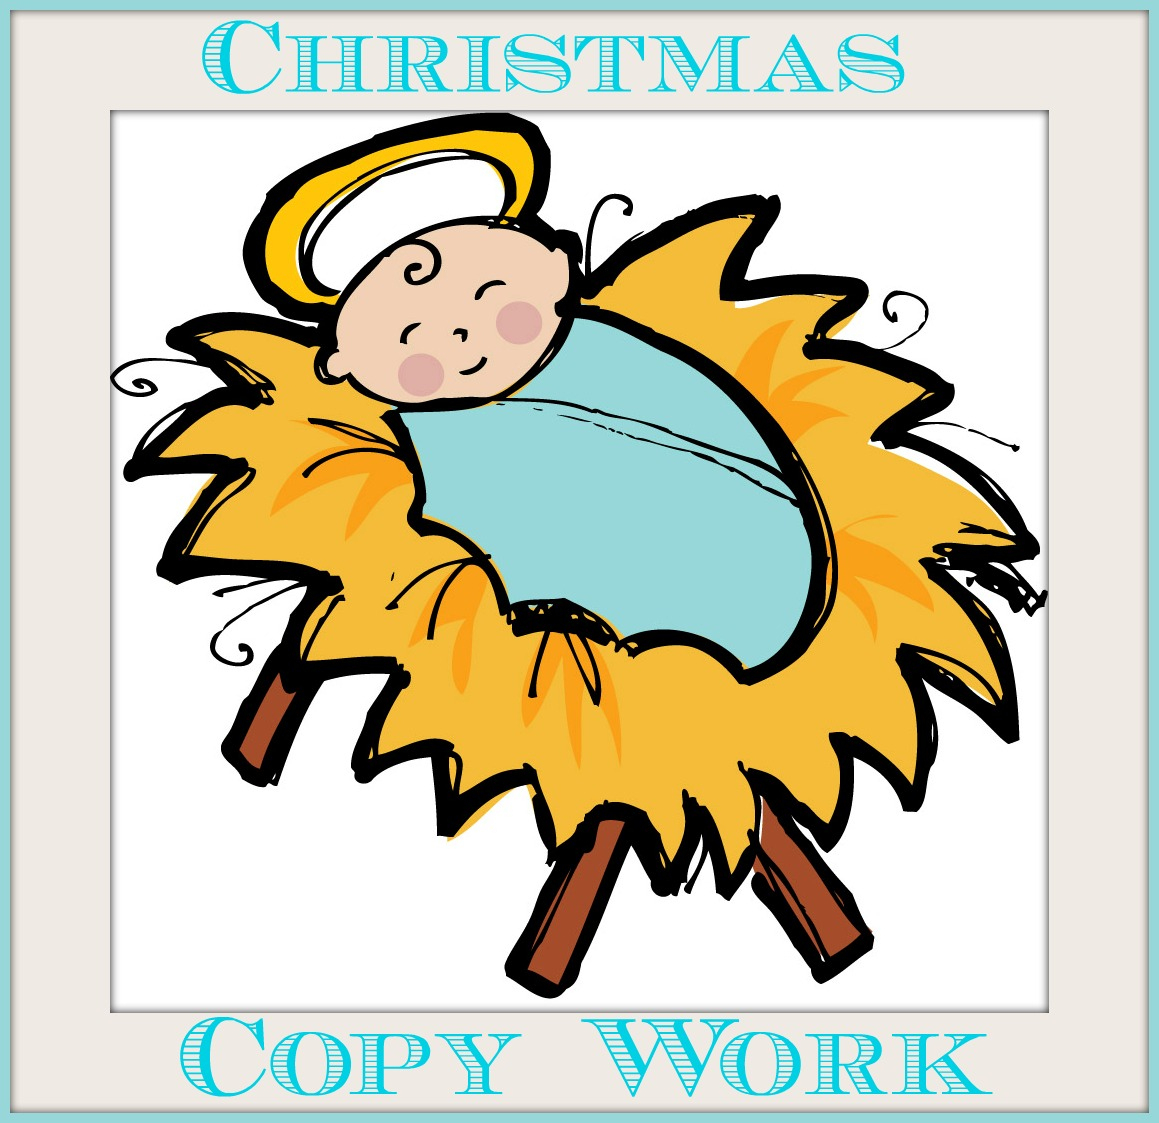 The Christmas Story Free Printable For Copywork Great For - Free Printable Nativity Story